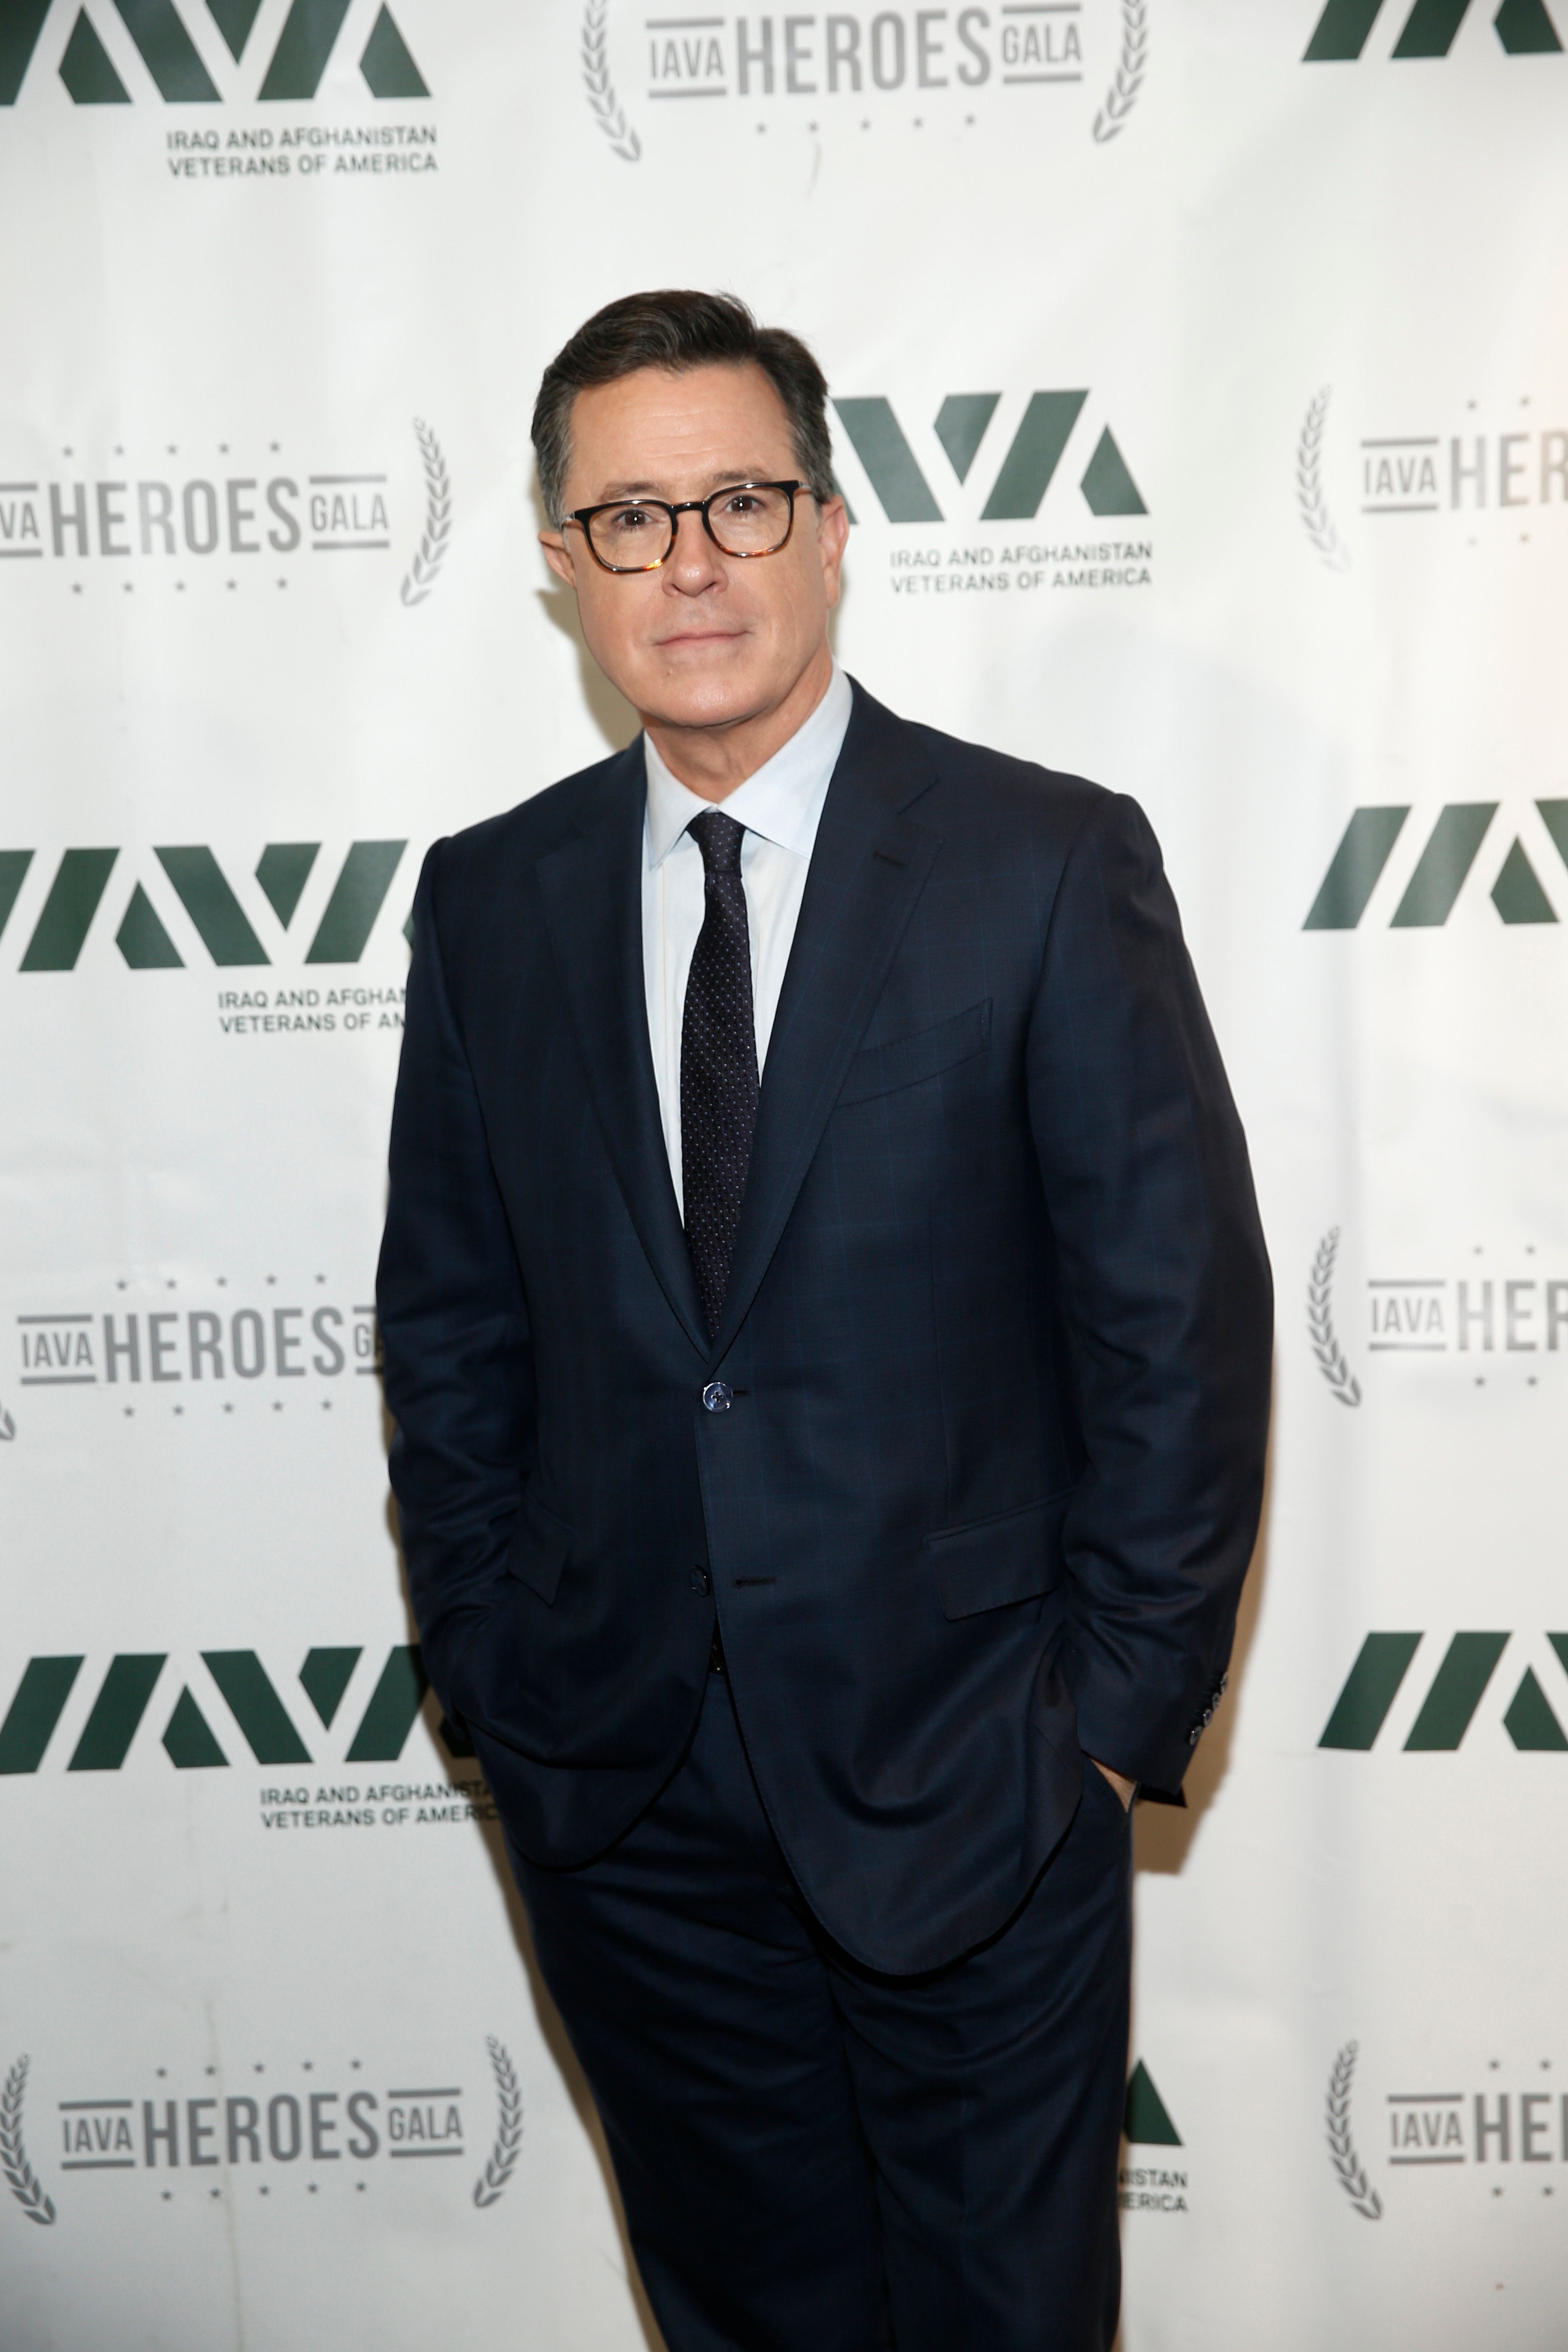 NEW YORK, NY - NOVEMBER 08:  Special guest Stephen Colbert attends IAVA 12th Annual Heroes Gala at the Classic Car Club Manhattan on November 8, 2018 in New York City.  (Photo by Brian Ach/Getty Images for Iraq and Afghanistan Veterans of America )